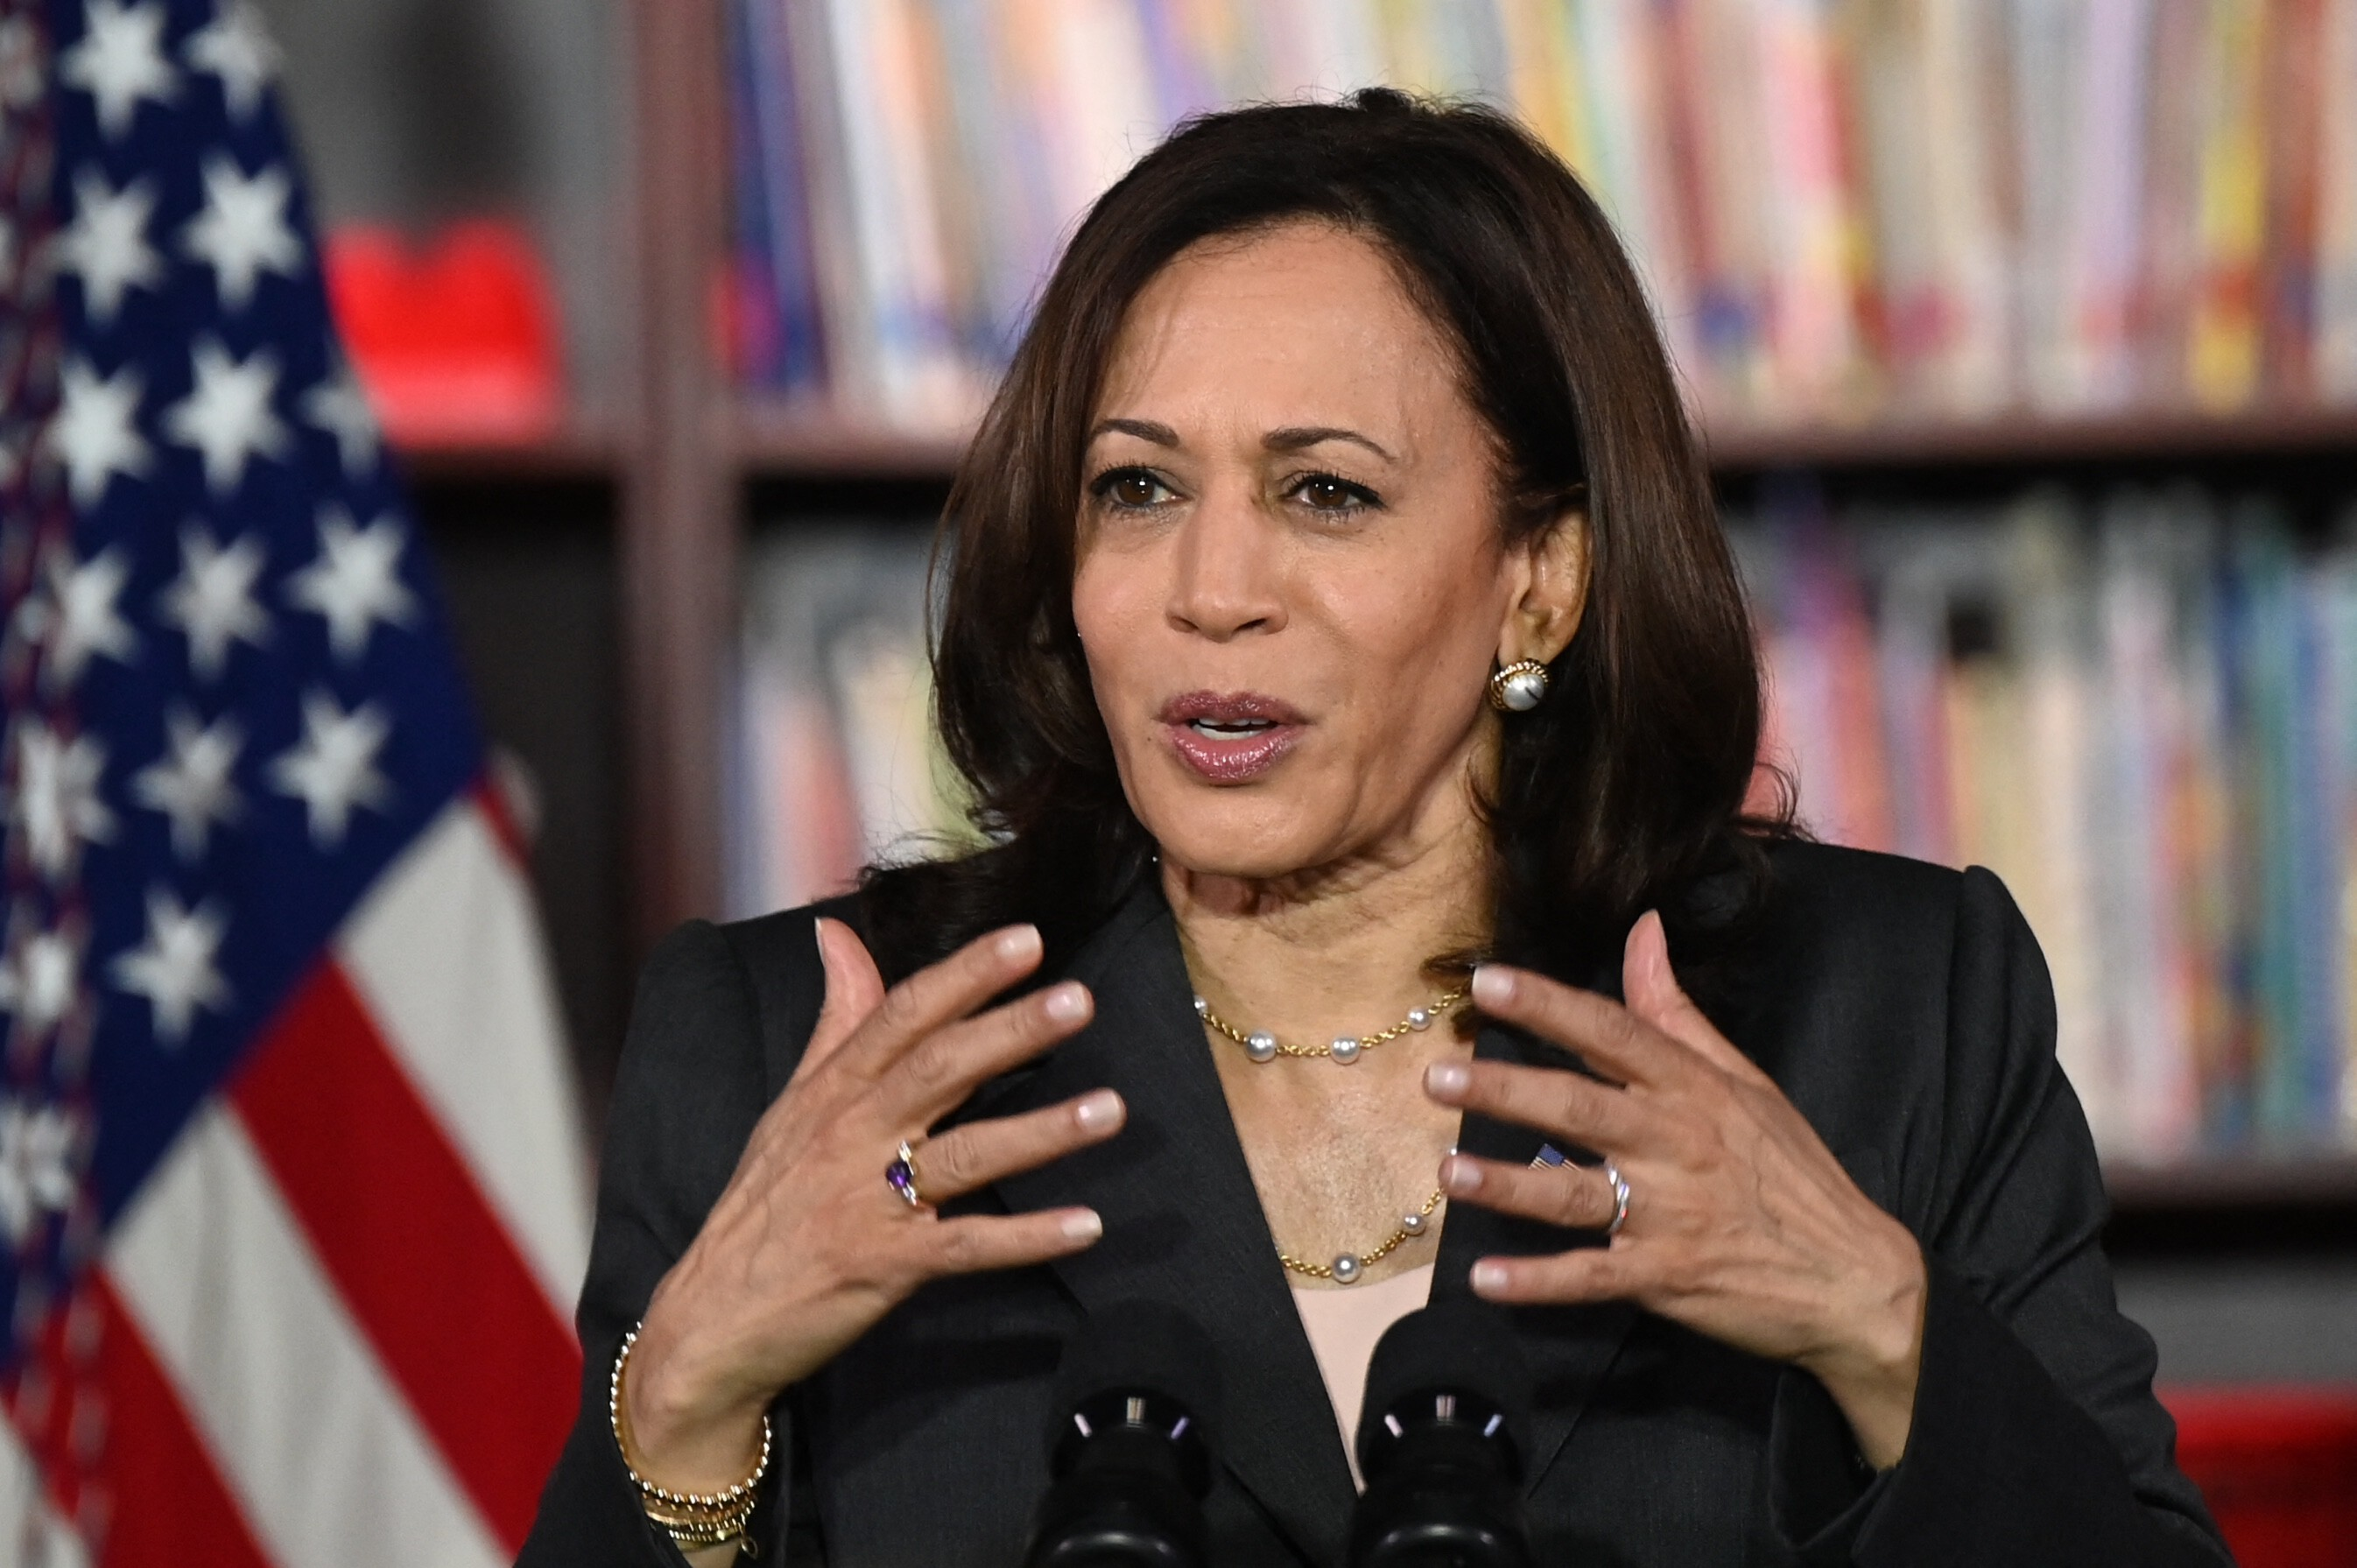 Harris among top Democrats planning to campaign in Virginia ahead of election